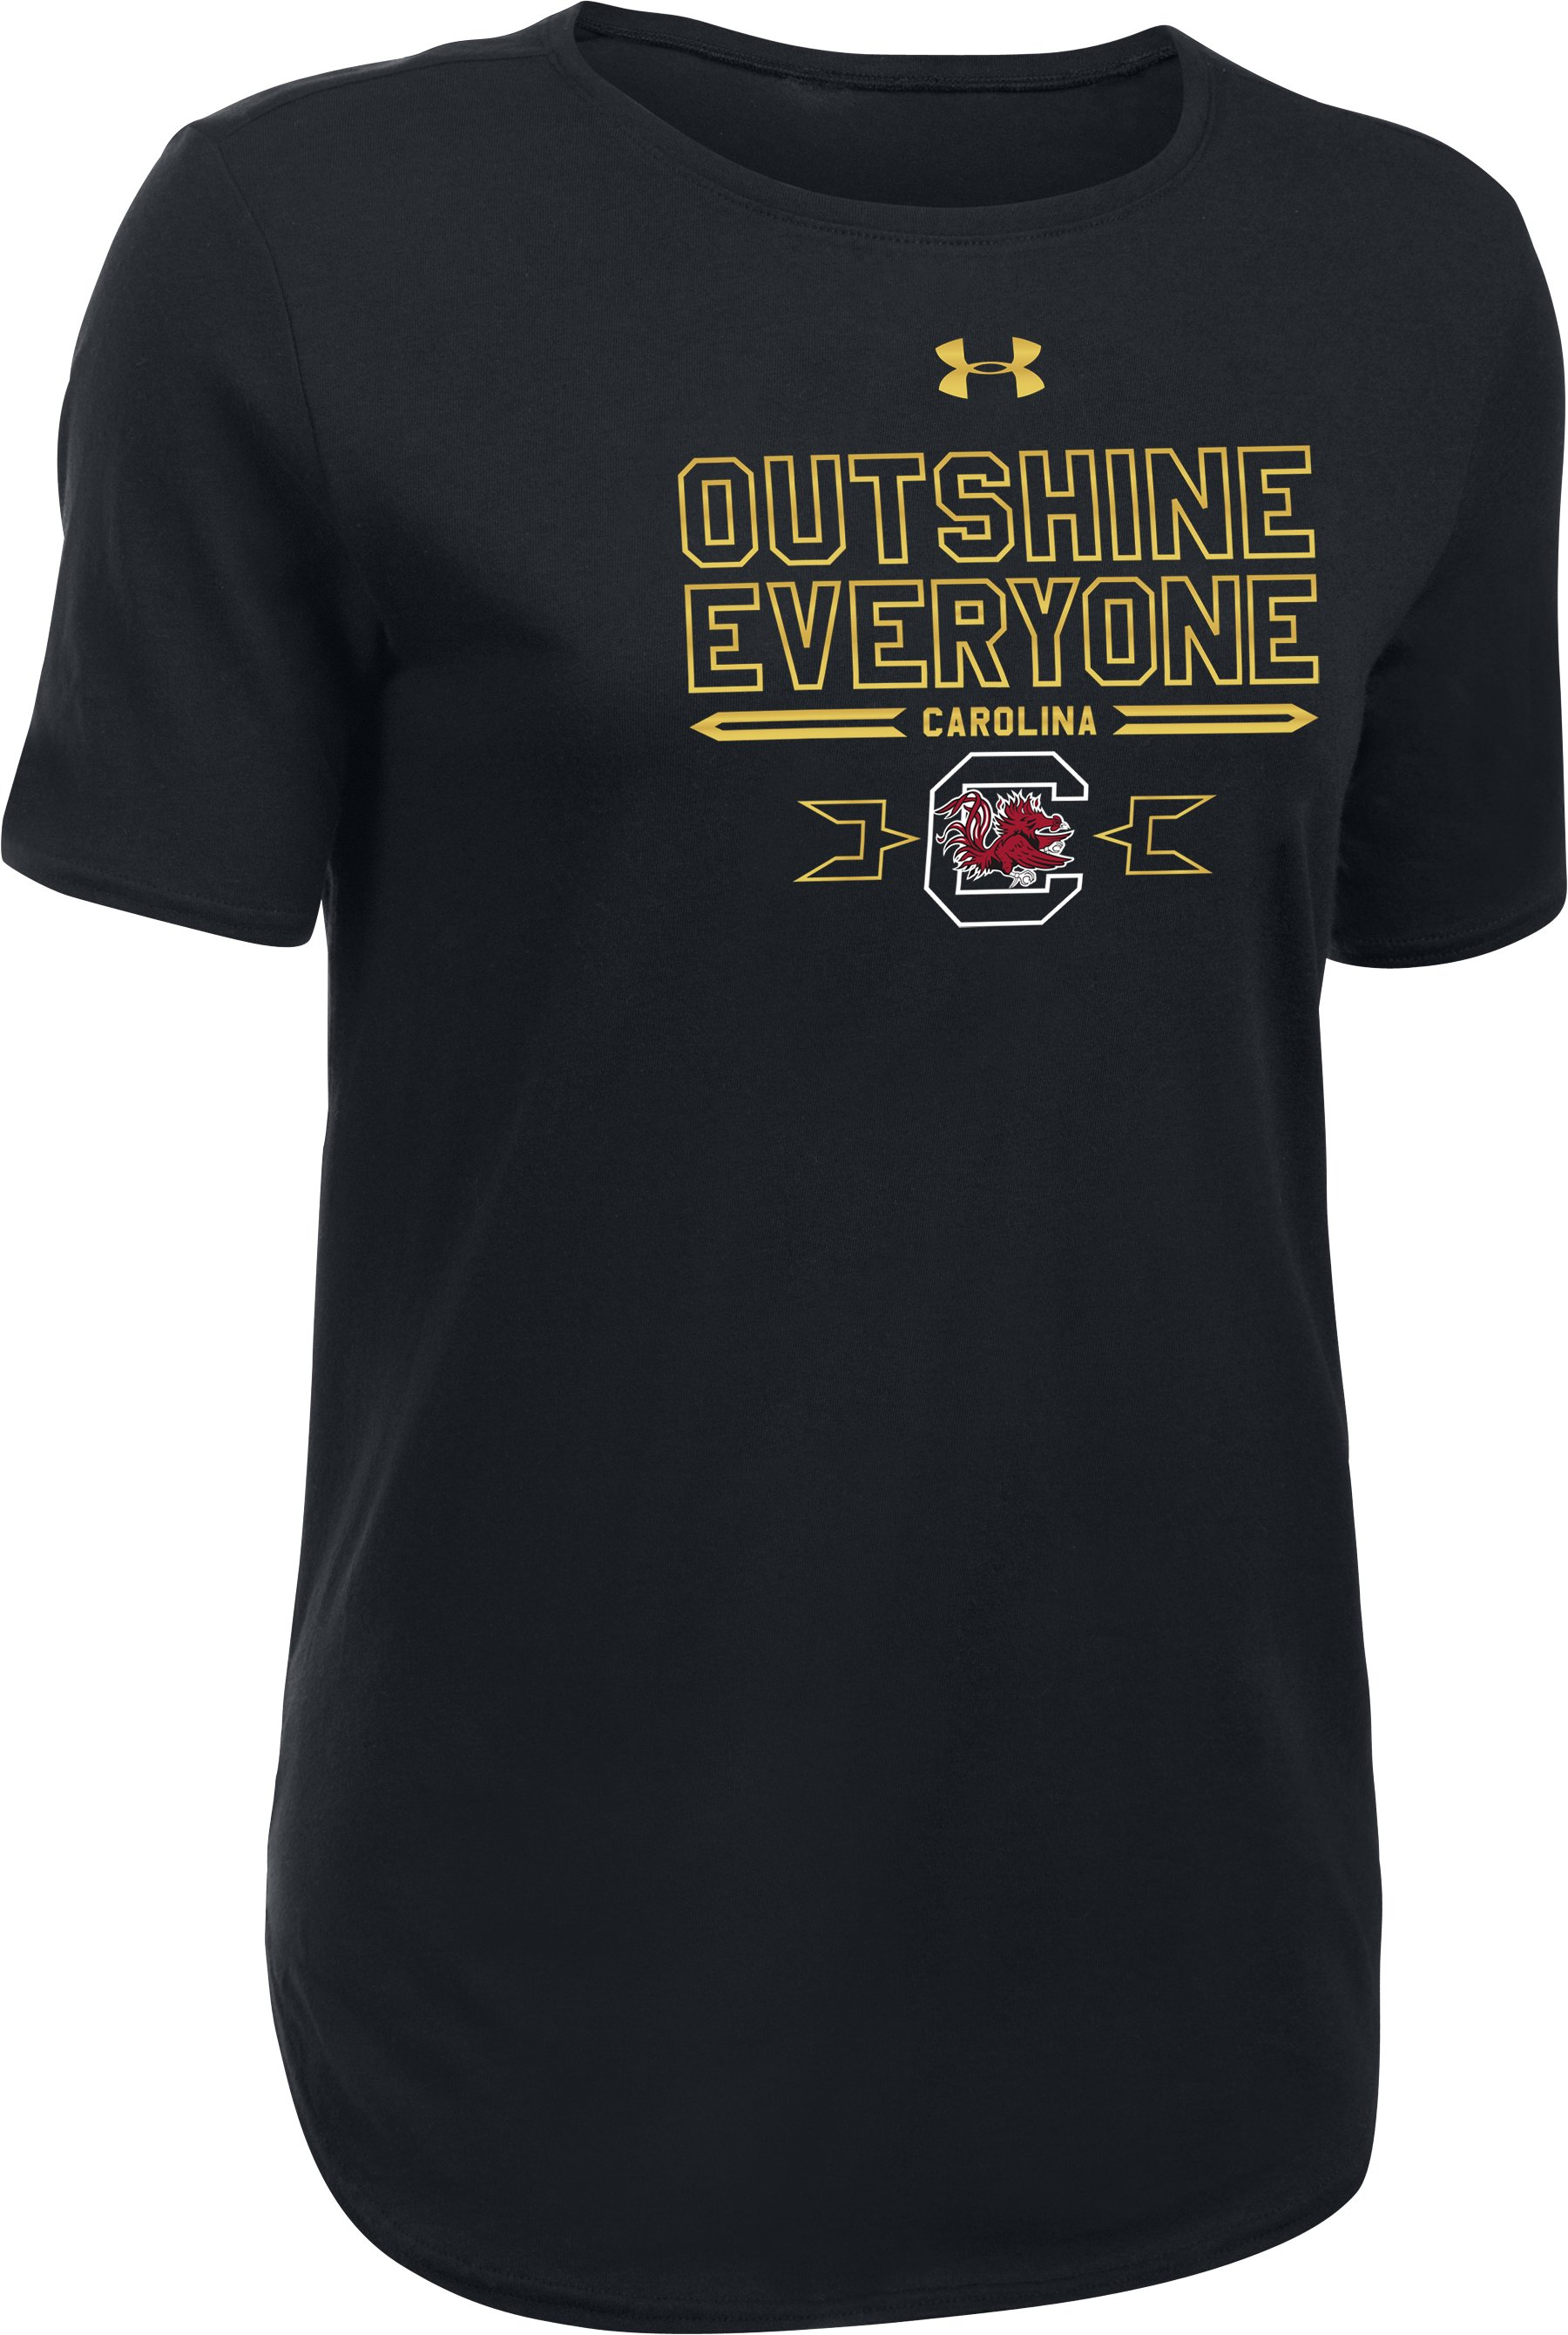 Women's South Carolina Outshine T-Shirt, Black